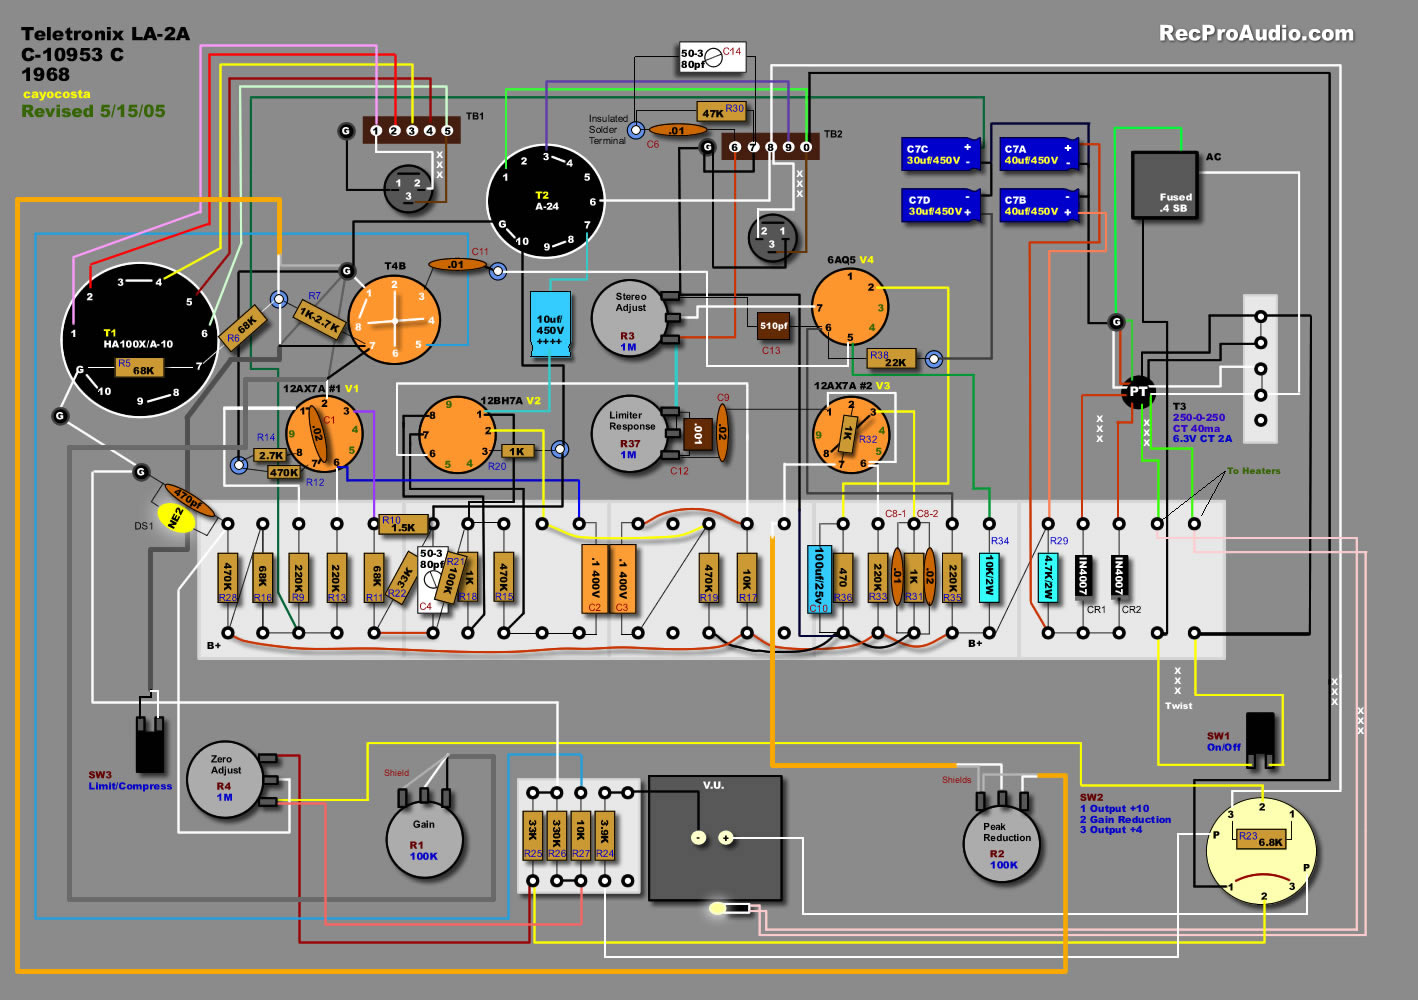 Teletronix La2a Leveling Amplifier Iration Audio Dean Guitar Wiring Diagram Free Picture Schematic Layout Look At The Green Wire Going From Fuse To Ground How Is